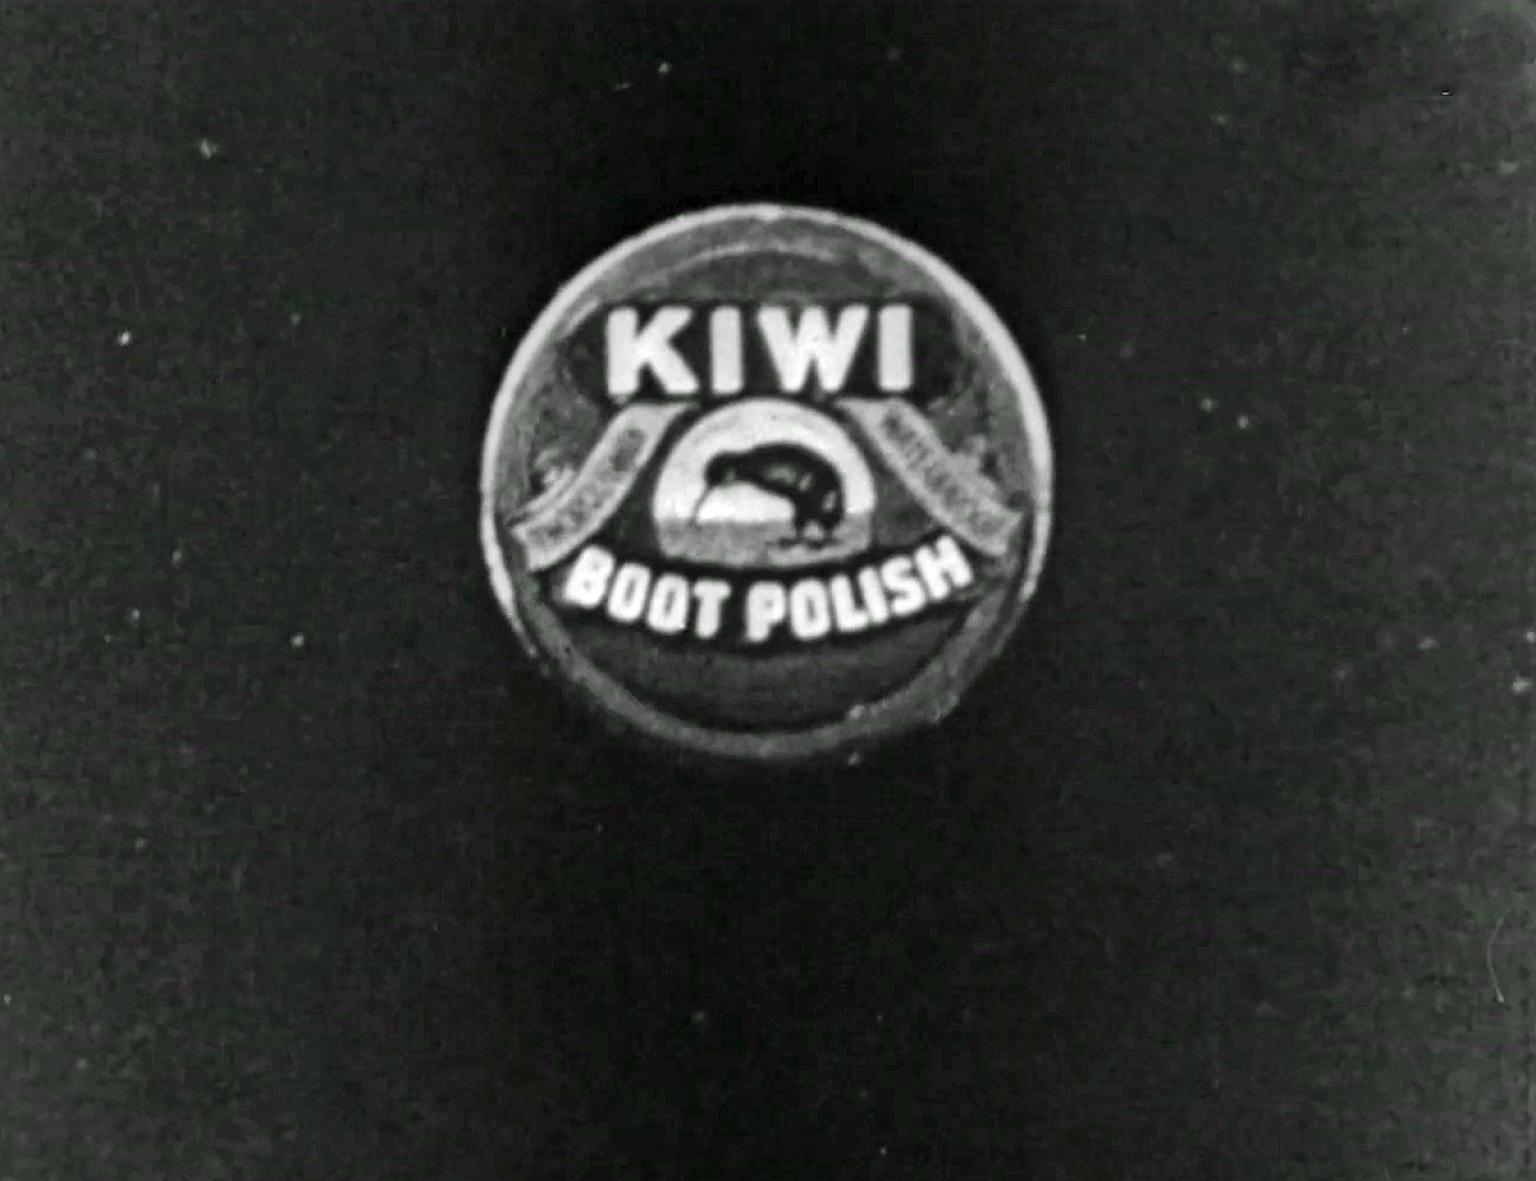 Logo for the brand Kiwi boot polish showing the brand name and an image of a kiwi in the centre.